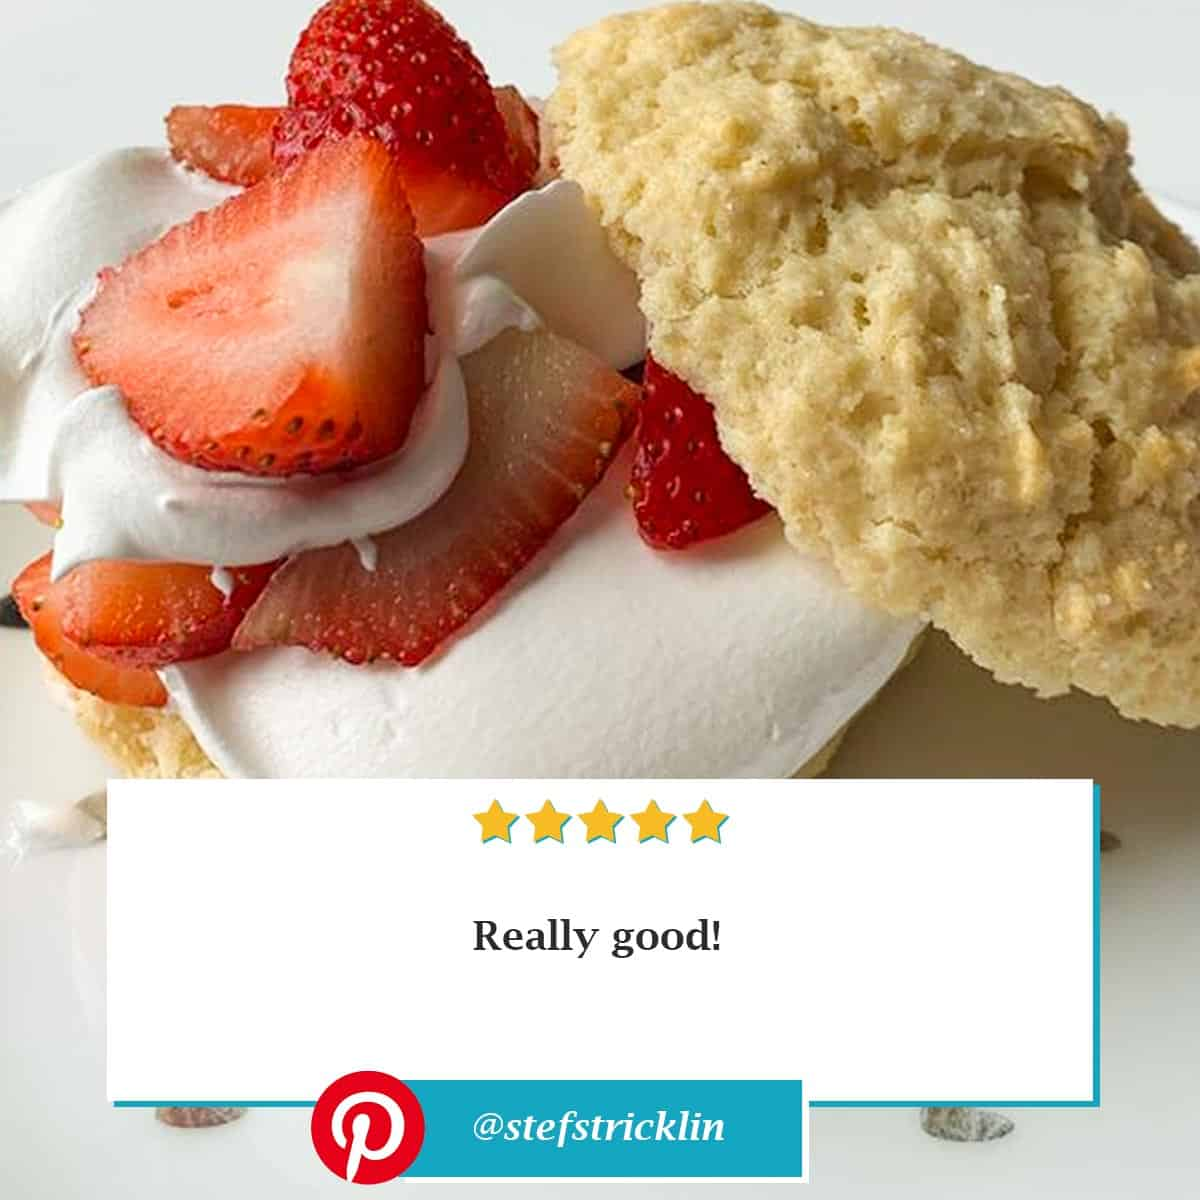 "Reviewer photo of the Strawberry Shortcake biscuits with the comment ""Really good!"" and their Pinterest username @stefstricklin"